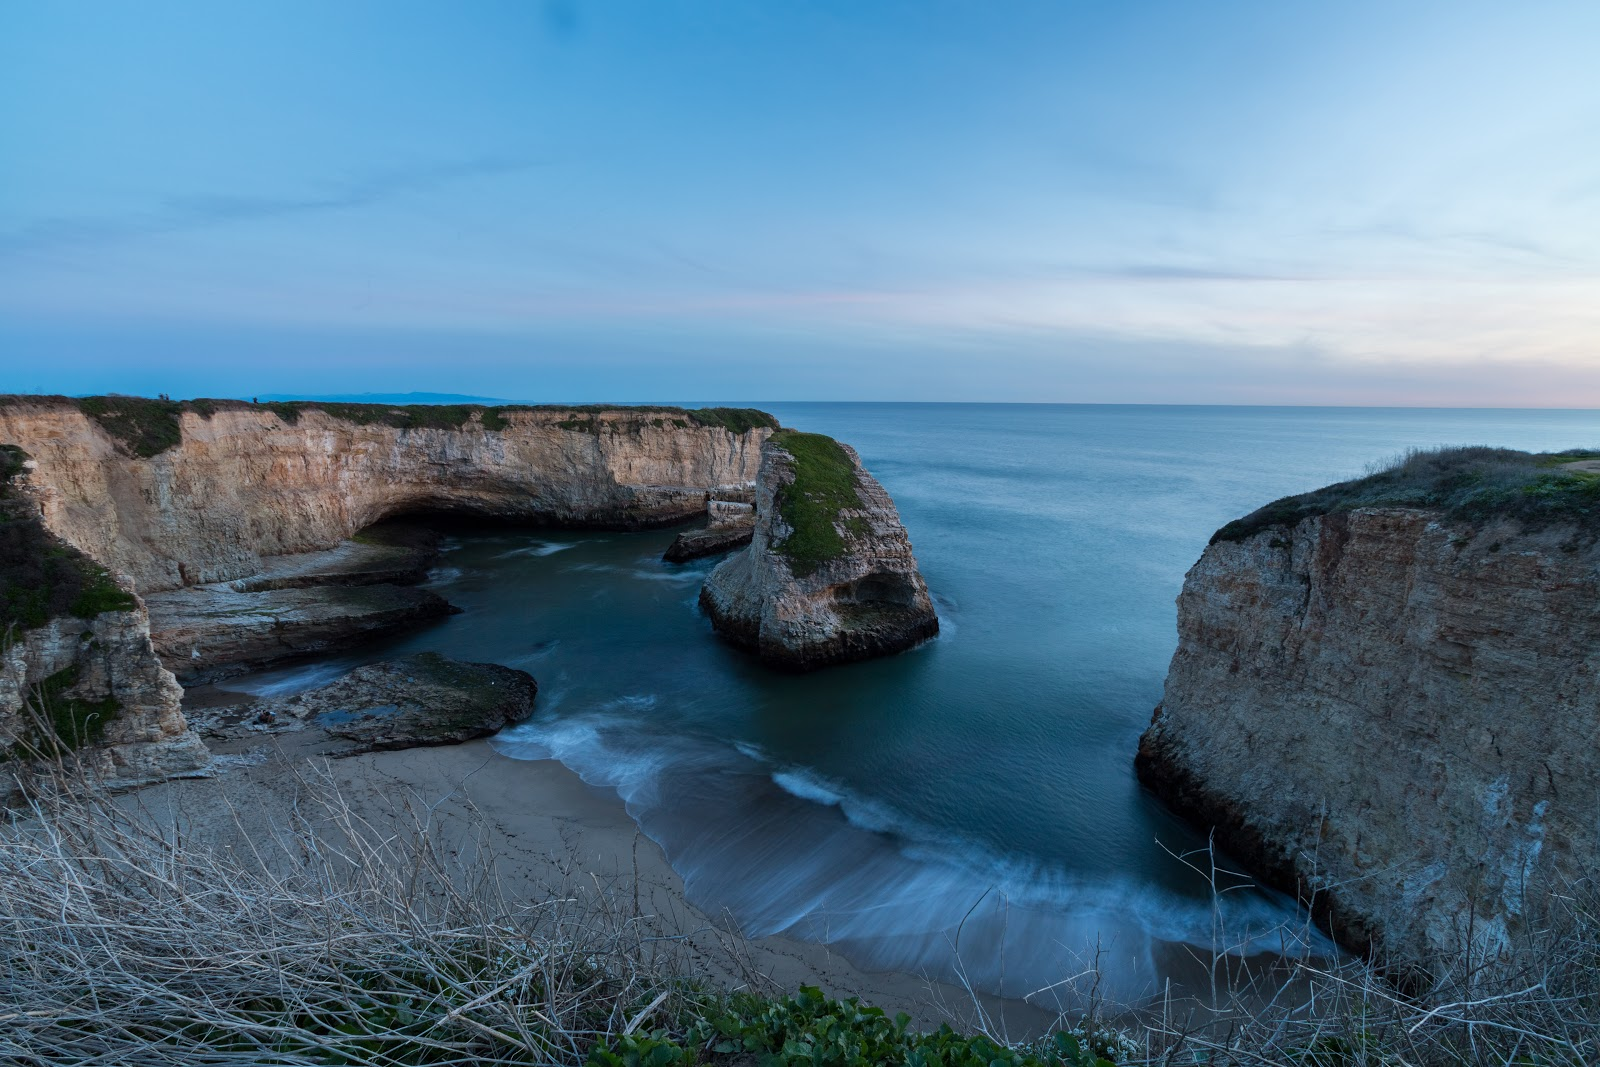 Long Exposure Sunset Photo From Shark Fin Cove